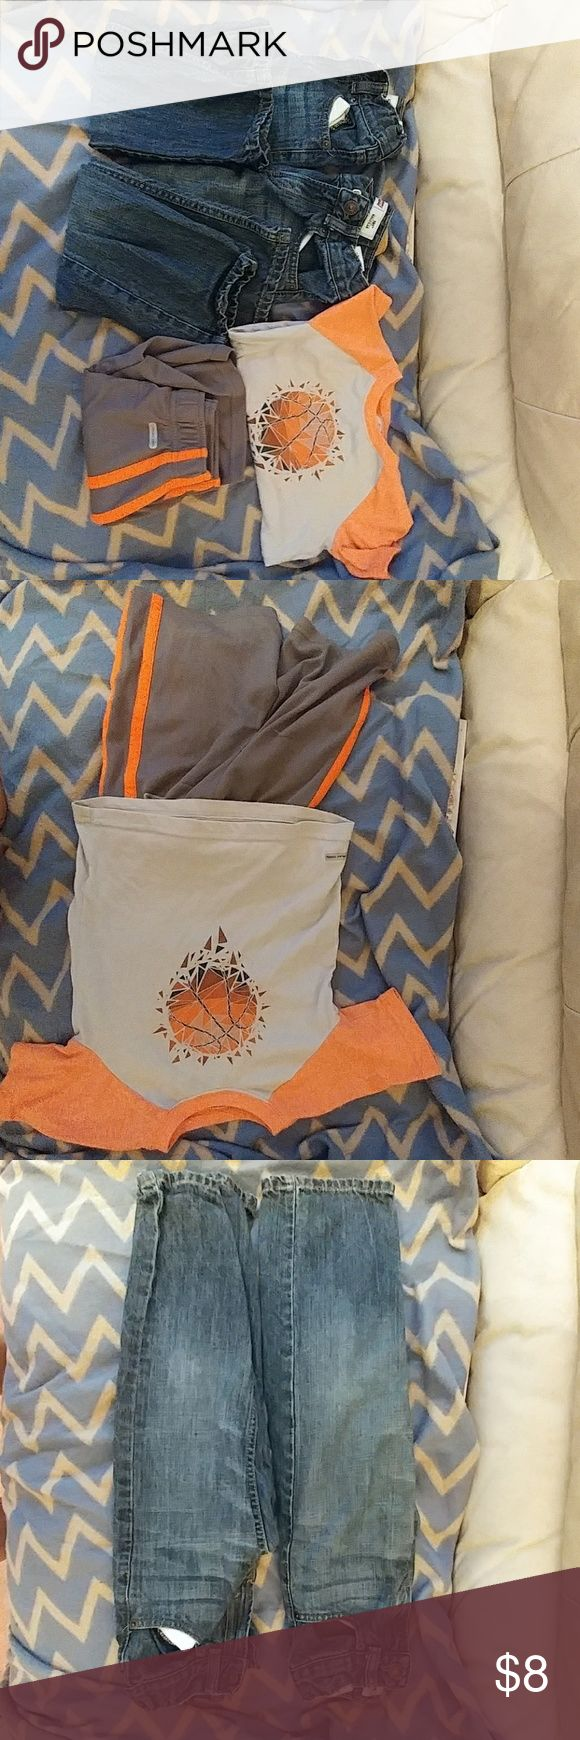 Boys 4t bundle of clothes Orange and grey outfit 4t Levi jeans 4/5 years old with adjustable waist bands  All have been worn but in good condition. Levi's Matching Sets